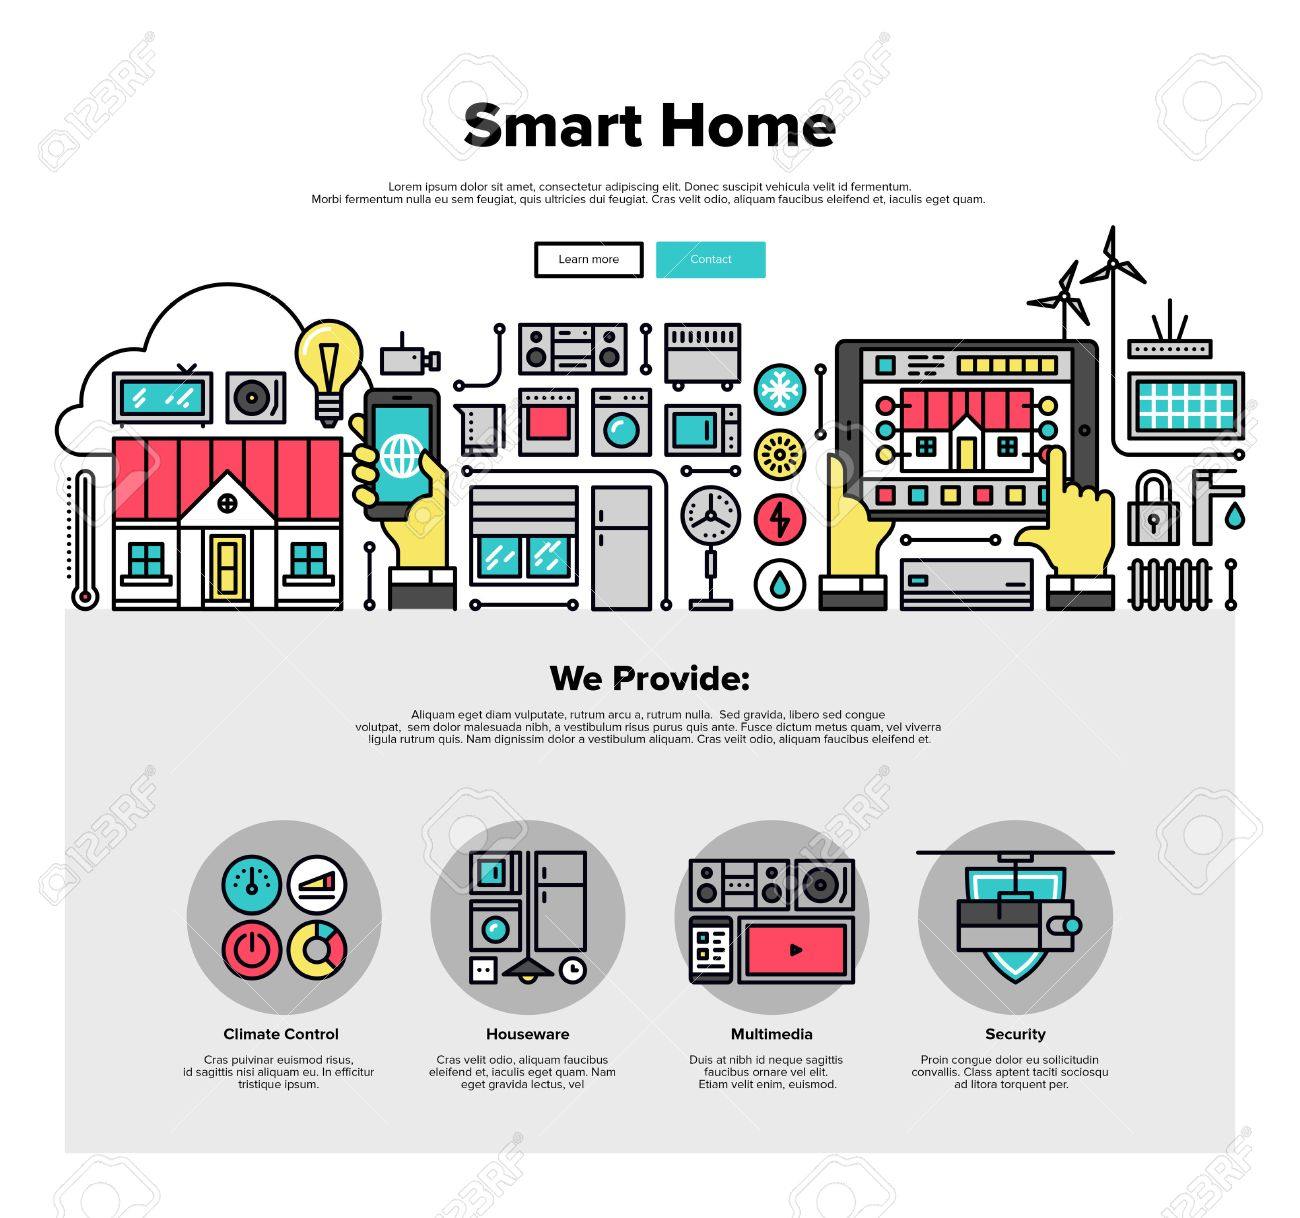 Best Kitchen Gallery: One Page Web Design Template With Thin Line Icons Of Smart Home of Home Automation Design  on rachelxblog.com